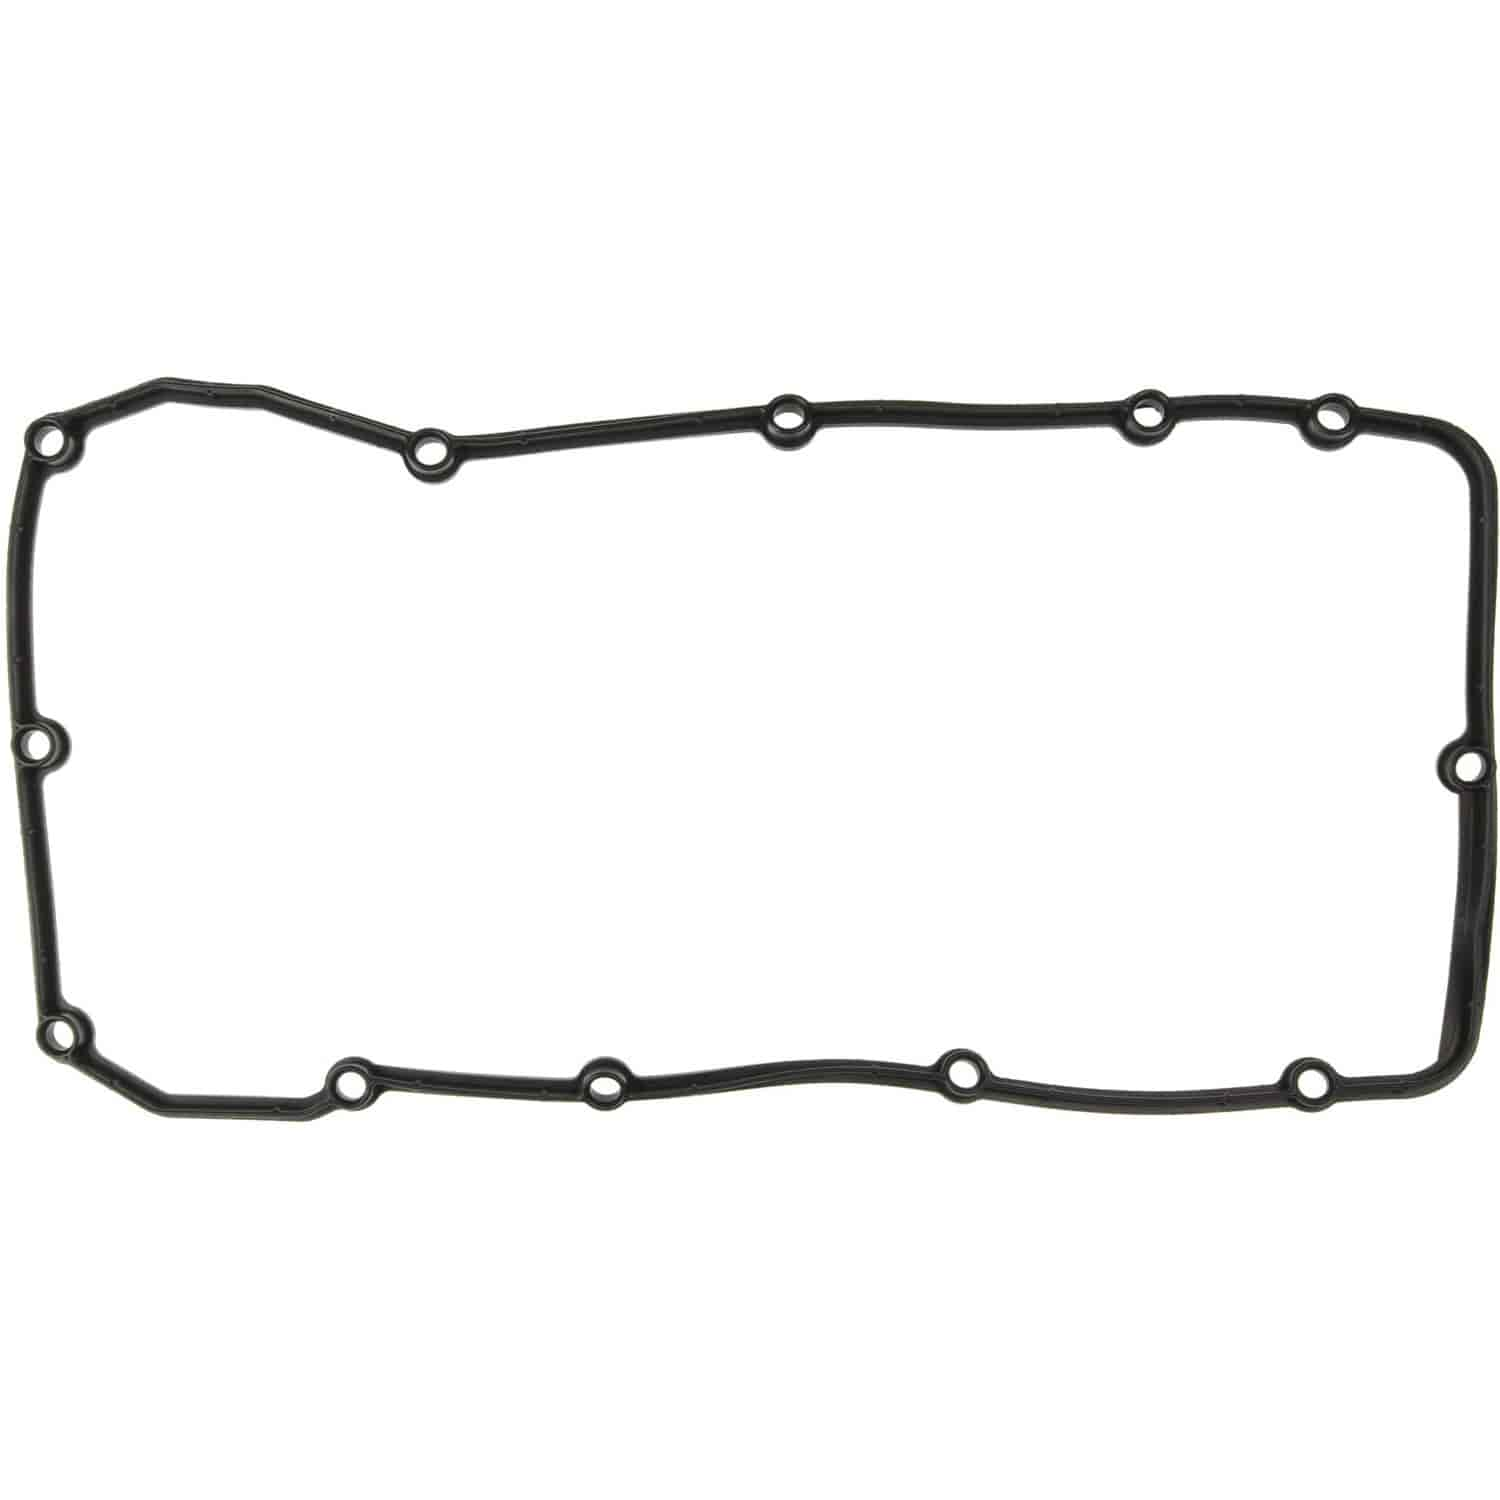 Clevite Mahle Vs Sl Valve Cover Gasket Left